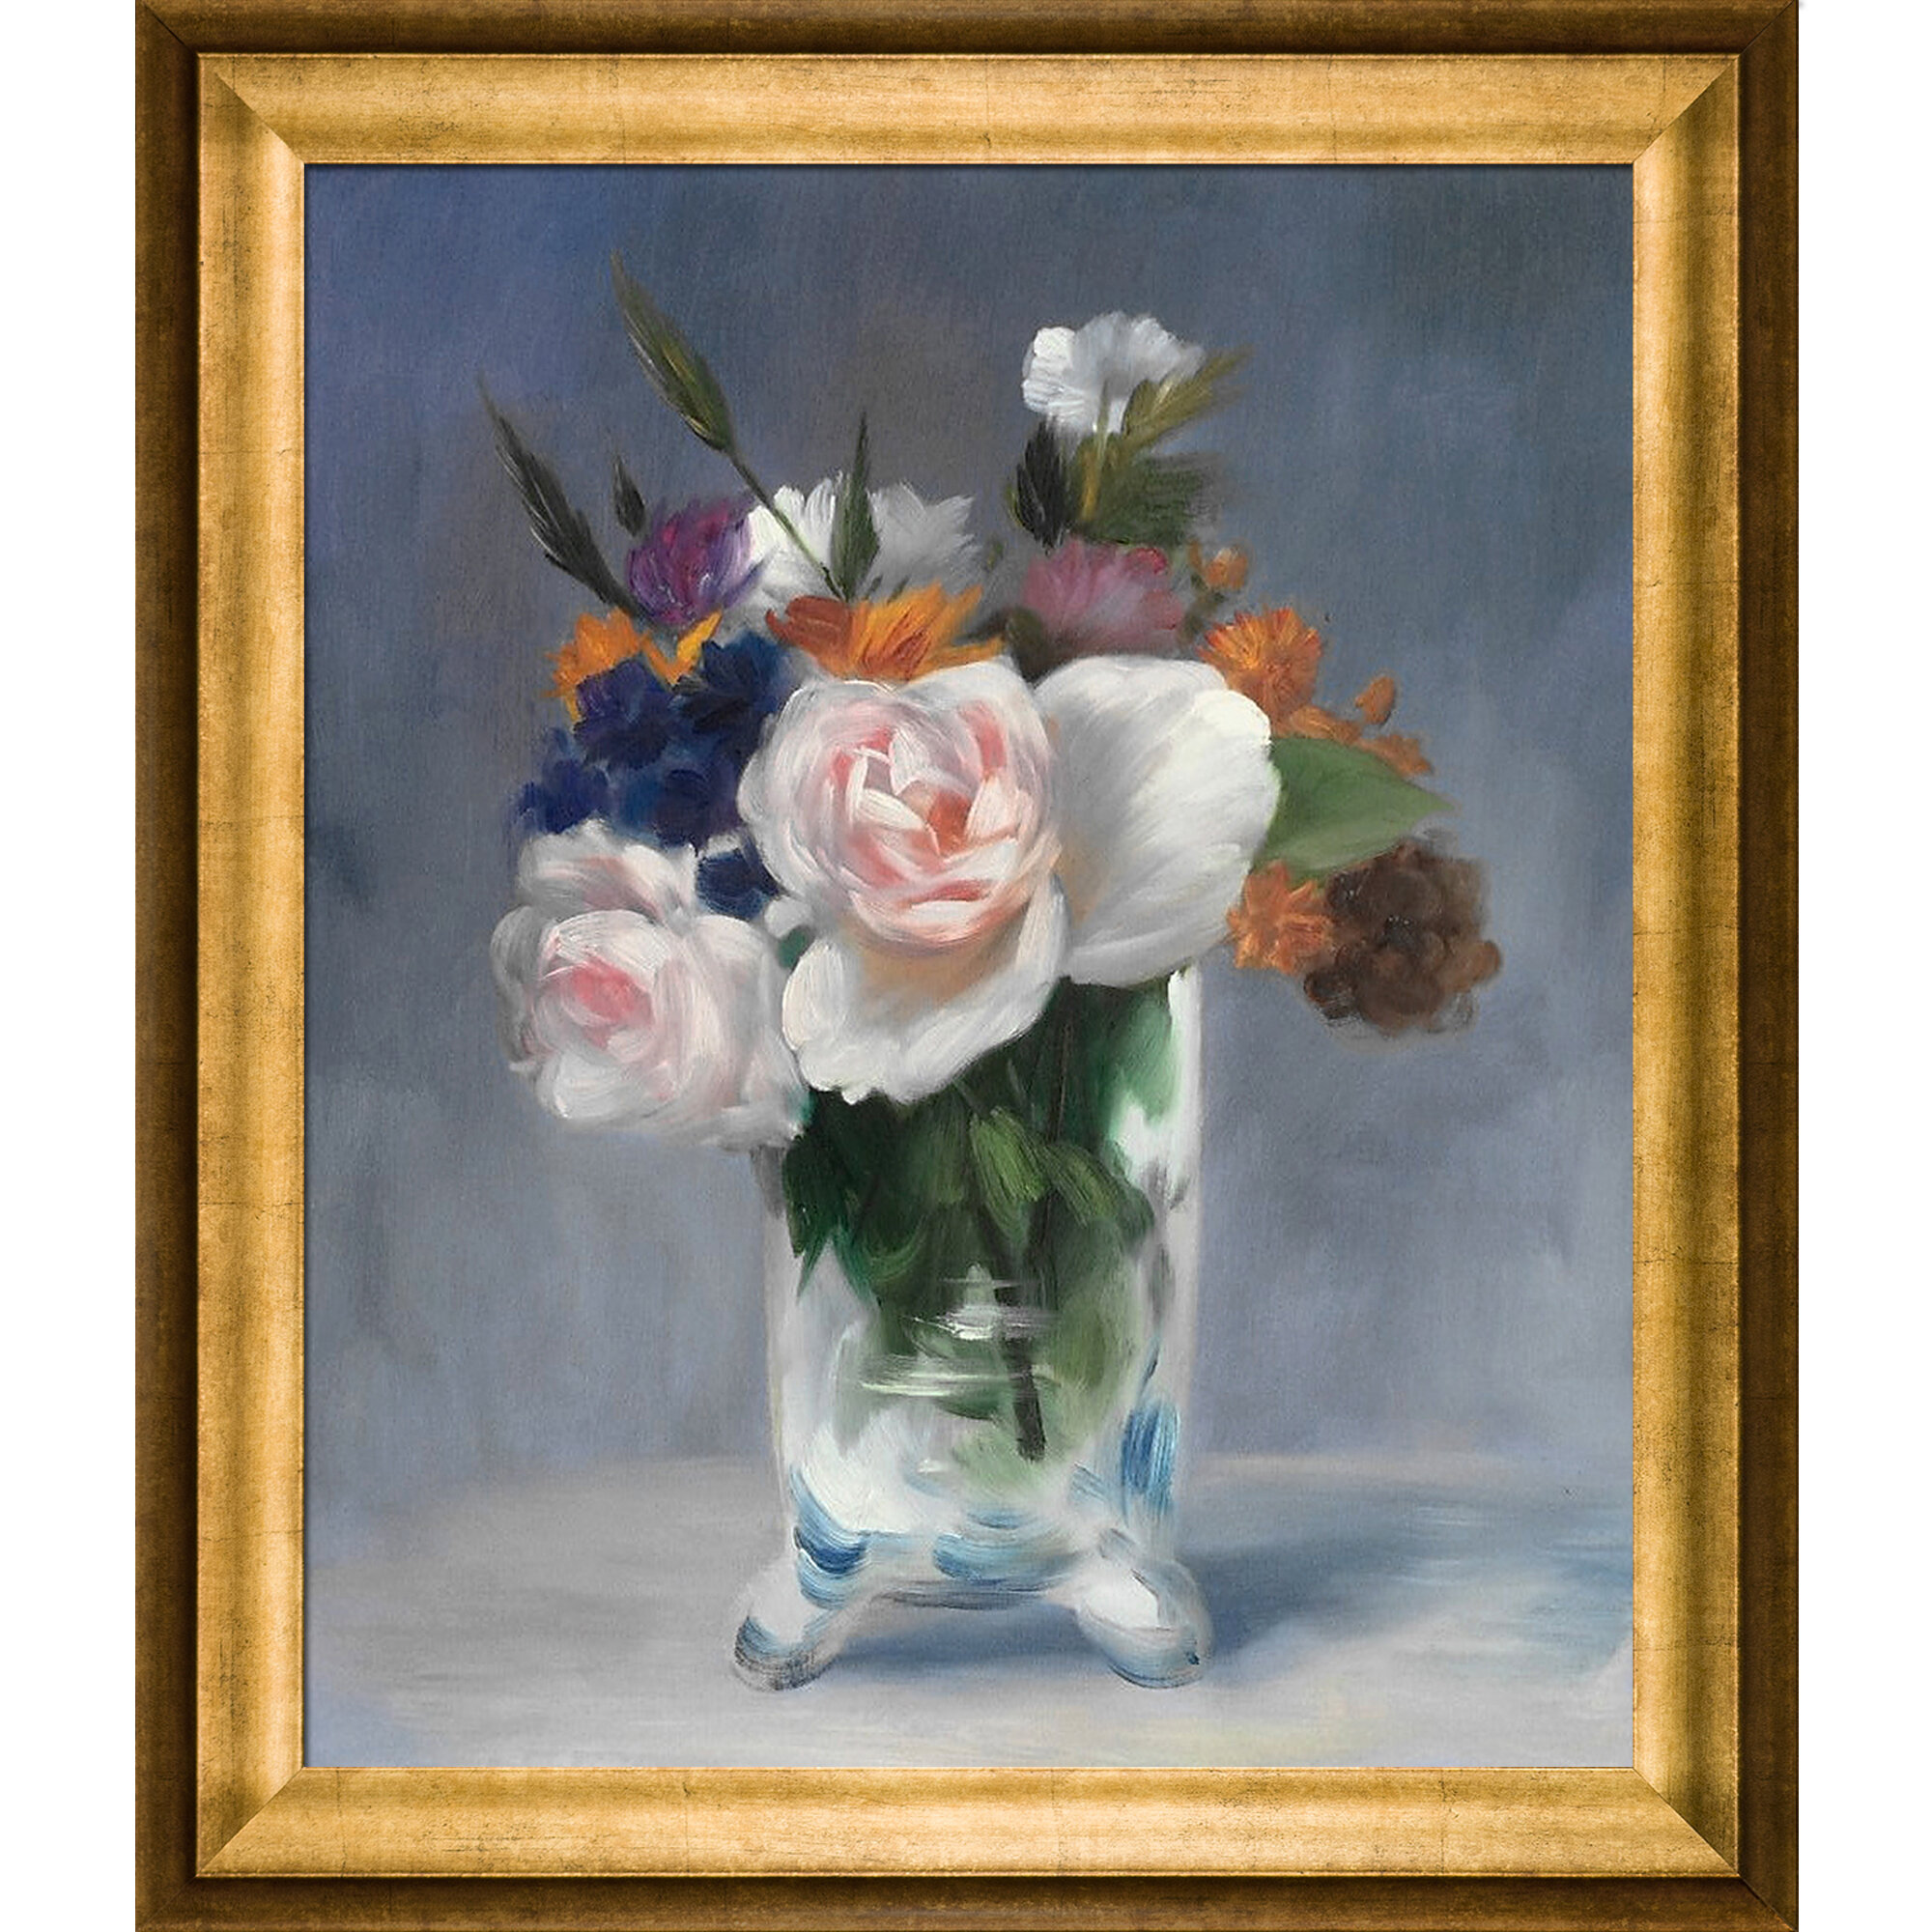 Vault W Artwork Flowers In A Crystal Vase By Edouard Manet Picture Frame Painting On Canvas Wayfair